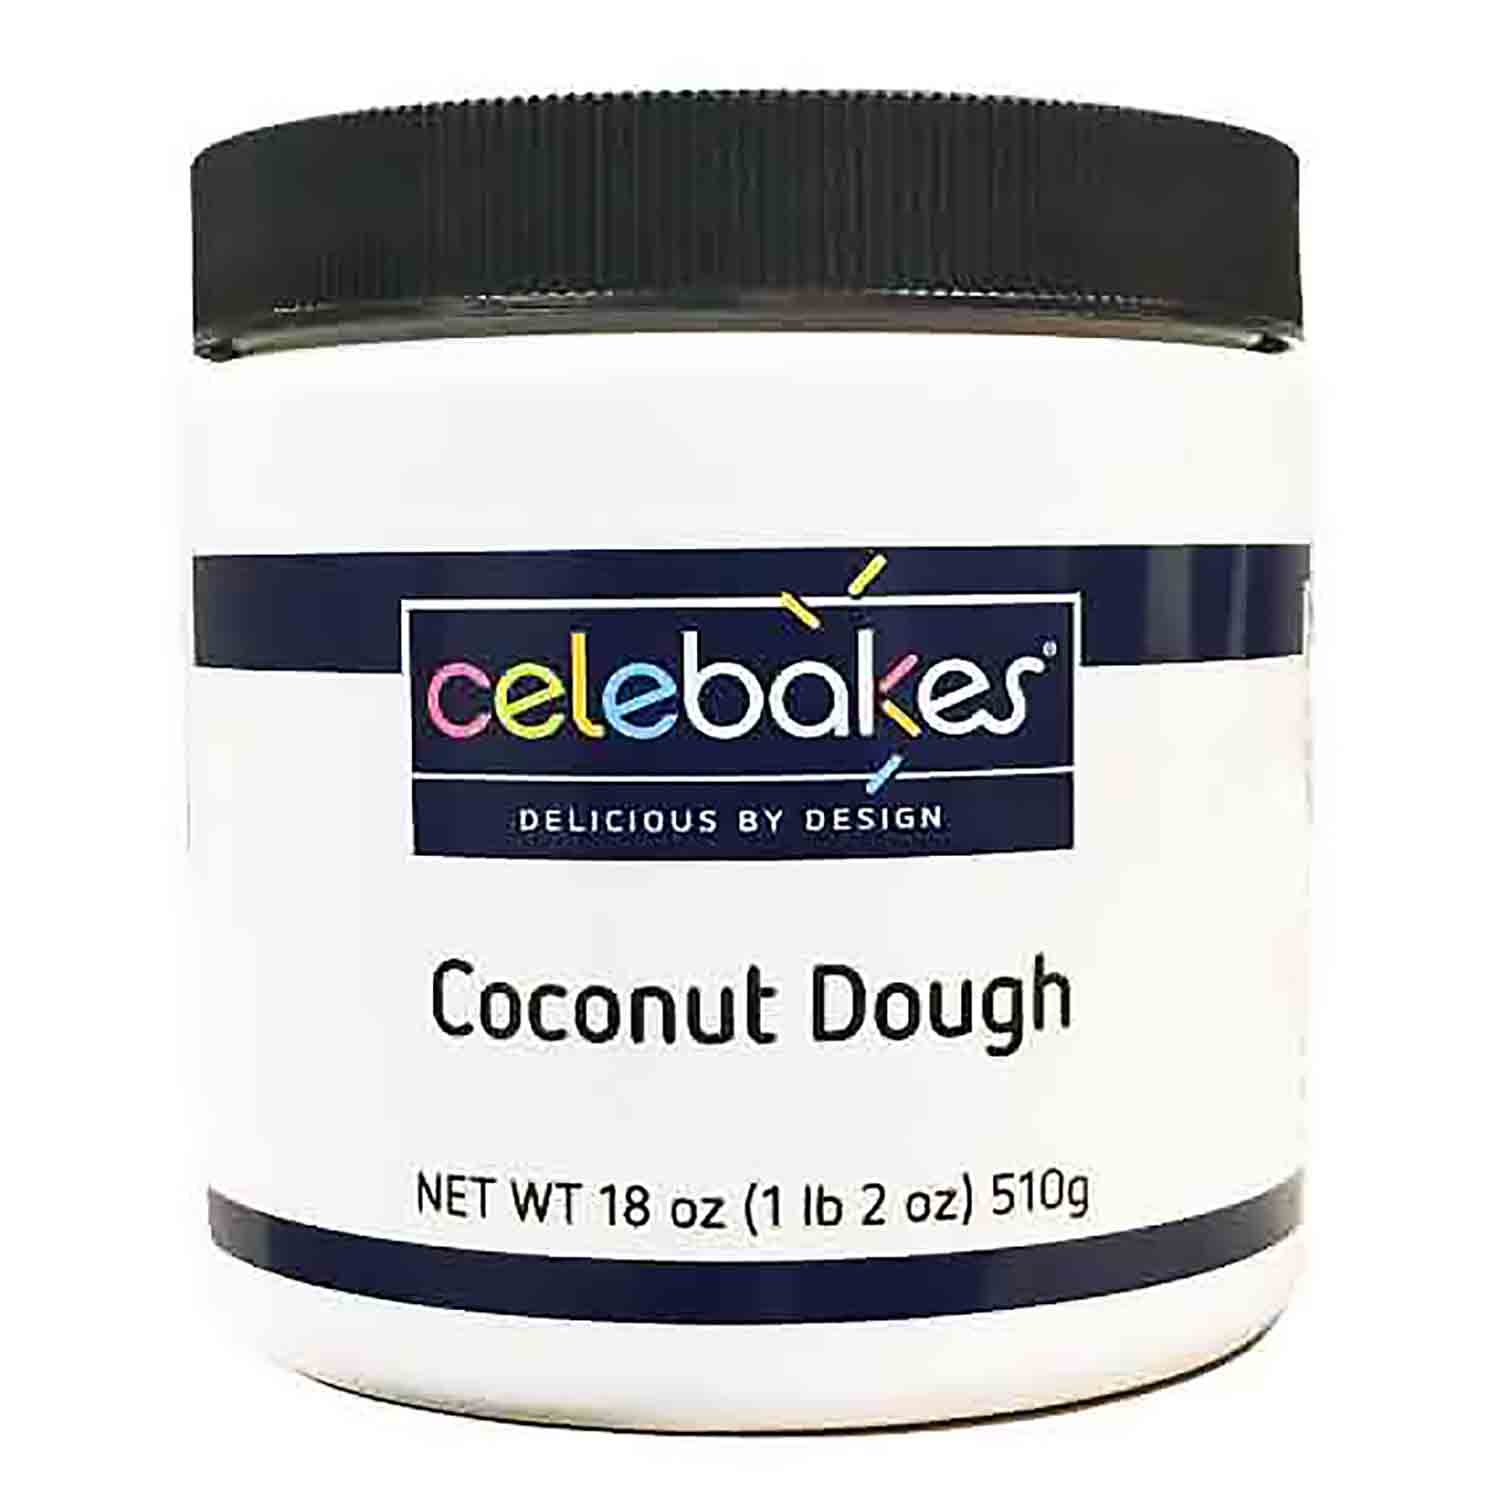 Coconut Dough